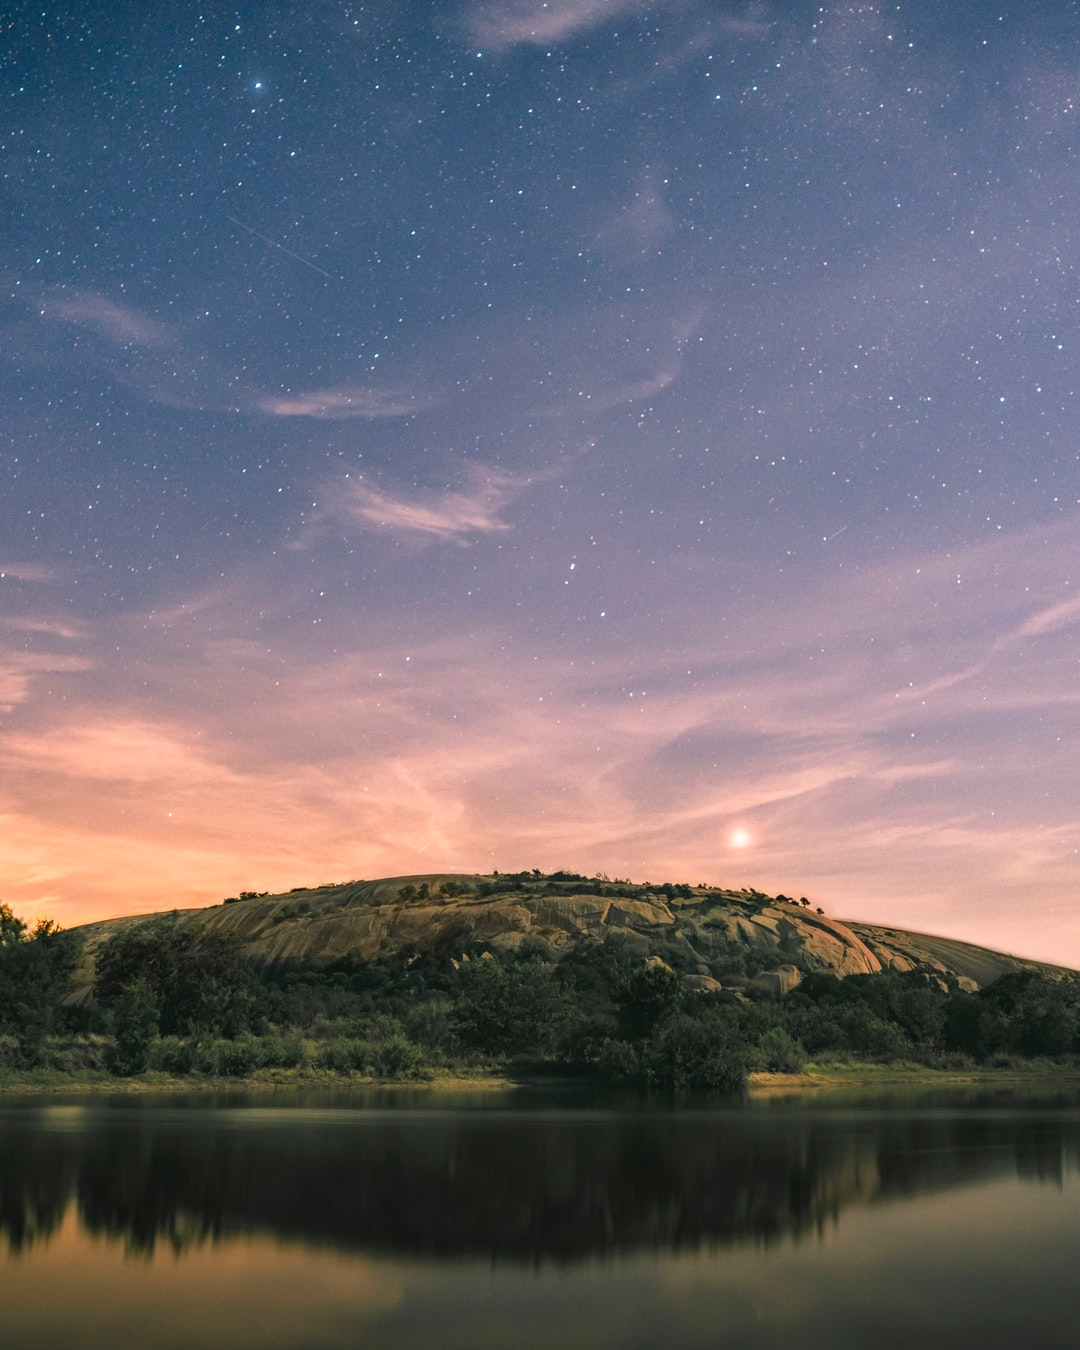 Full moon illuminated enchanted rock and clouds for an interesting long exposure